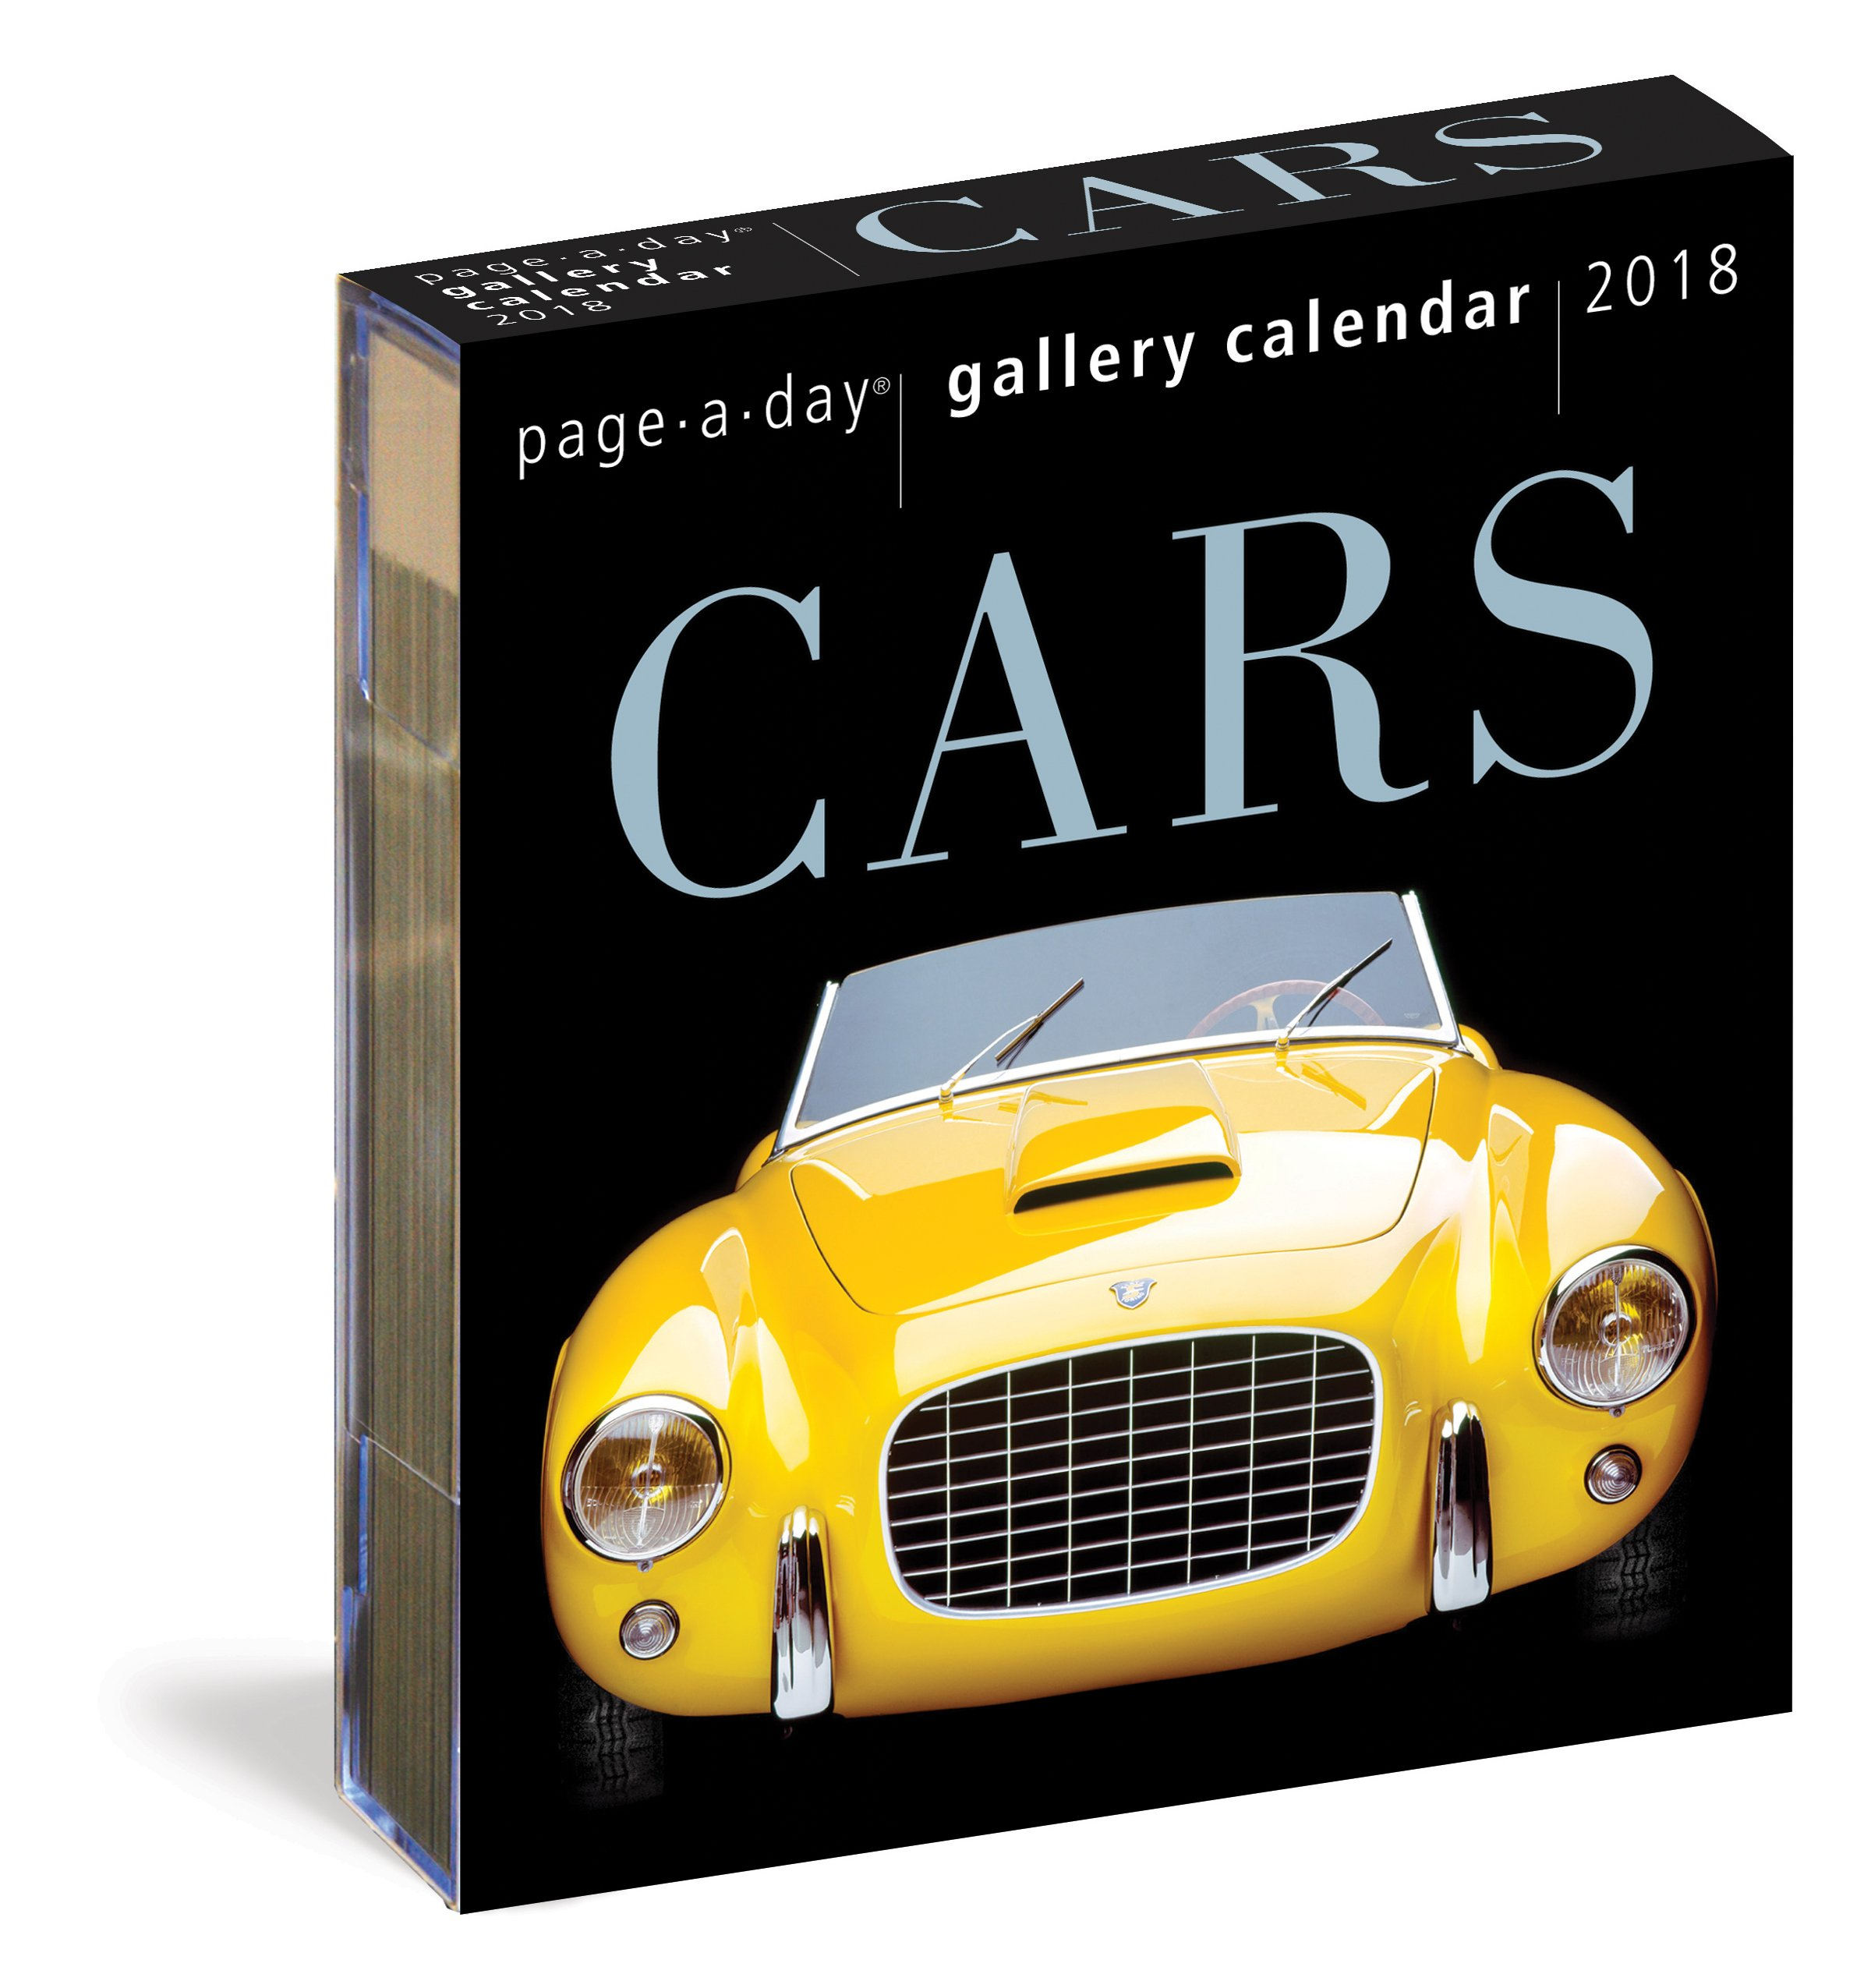 Cars Page-A-Day Gallery Calendar 2018: Workman Publishing ...